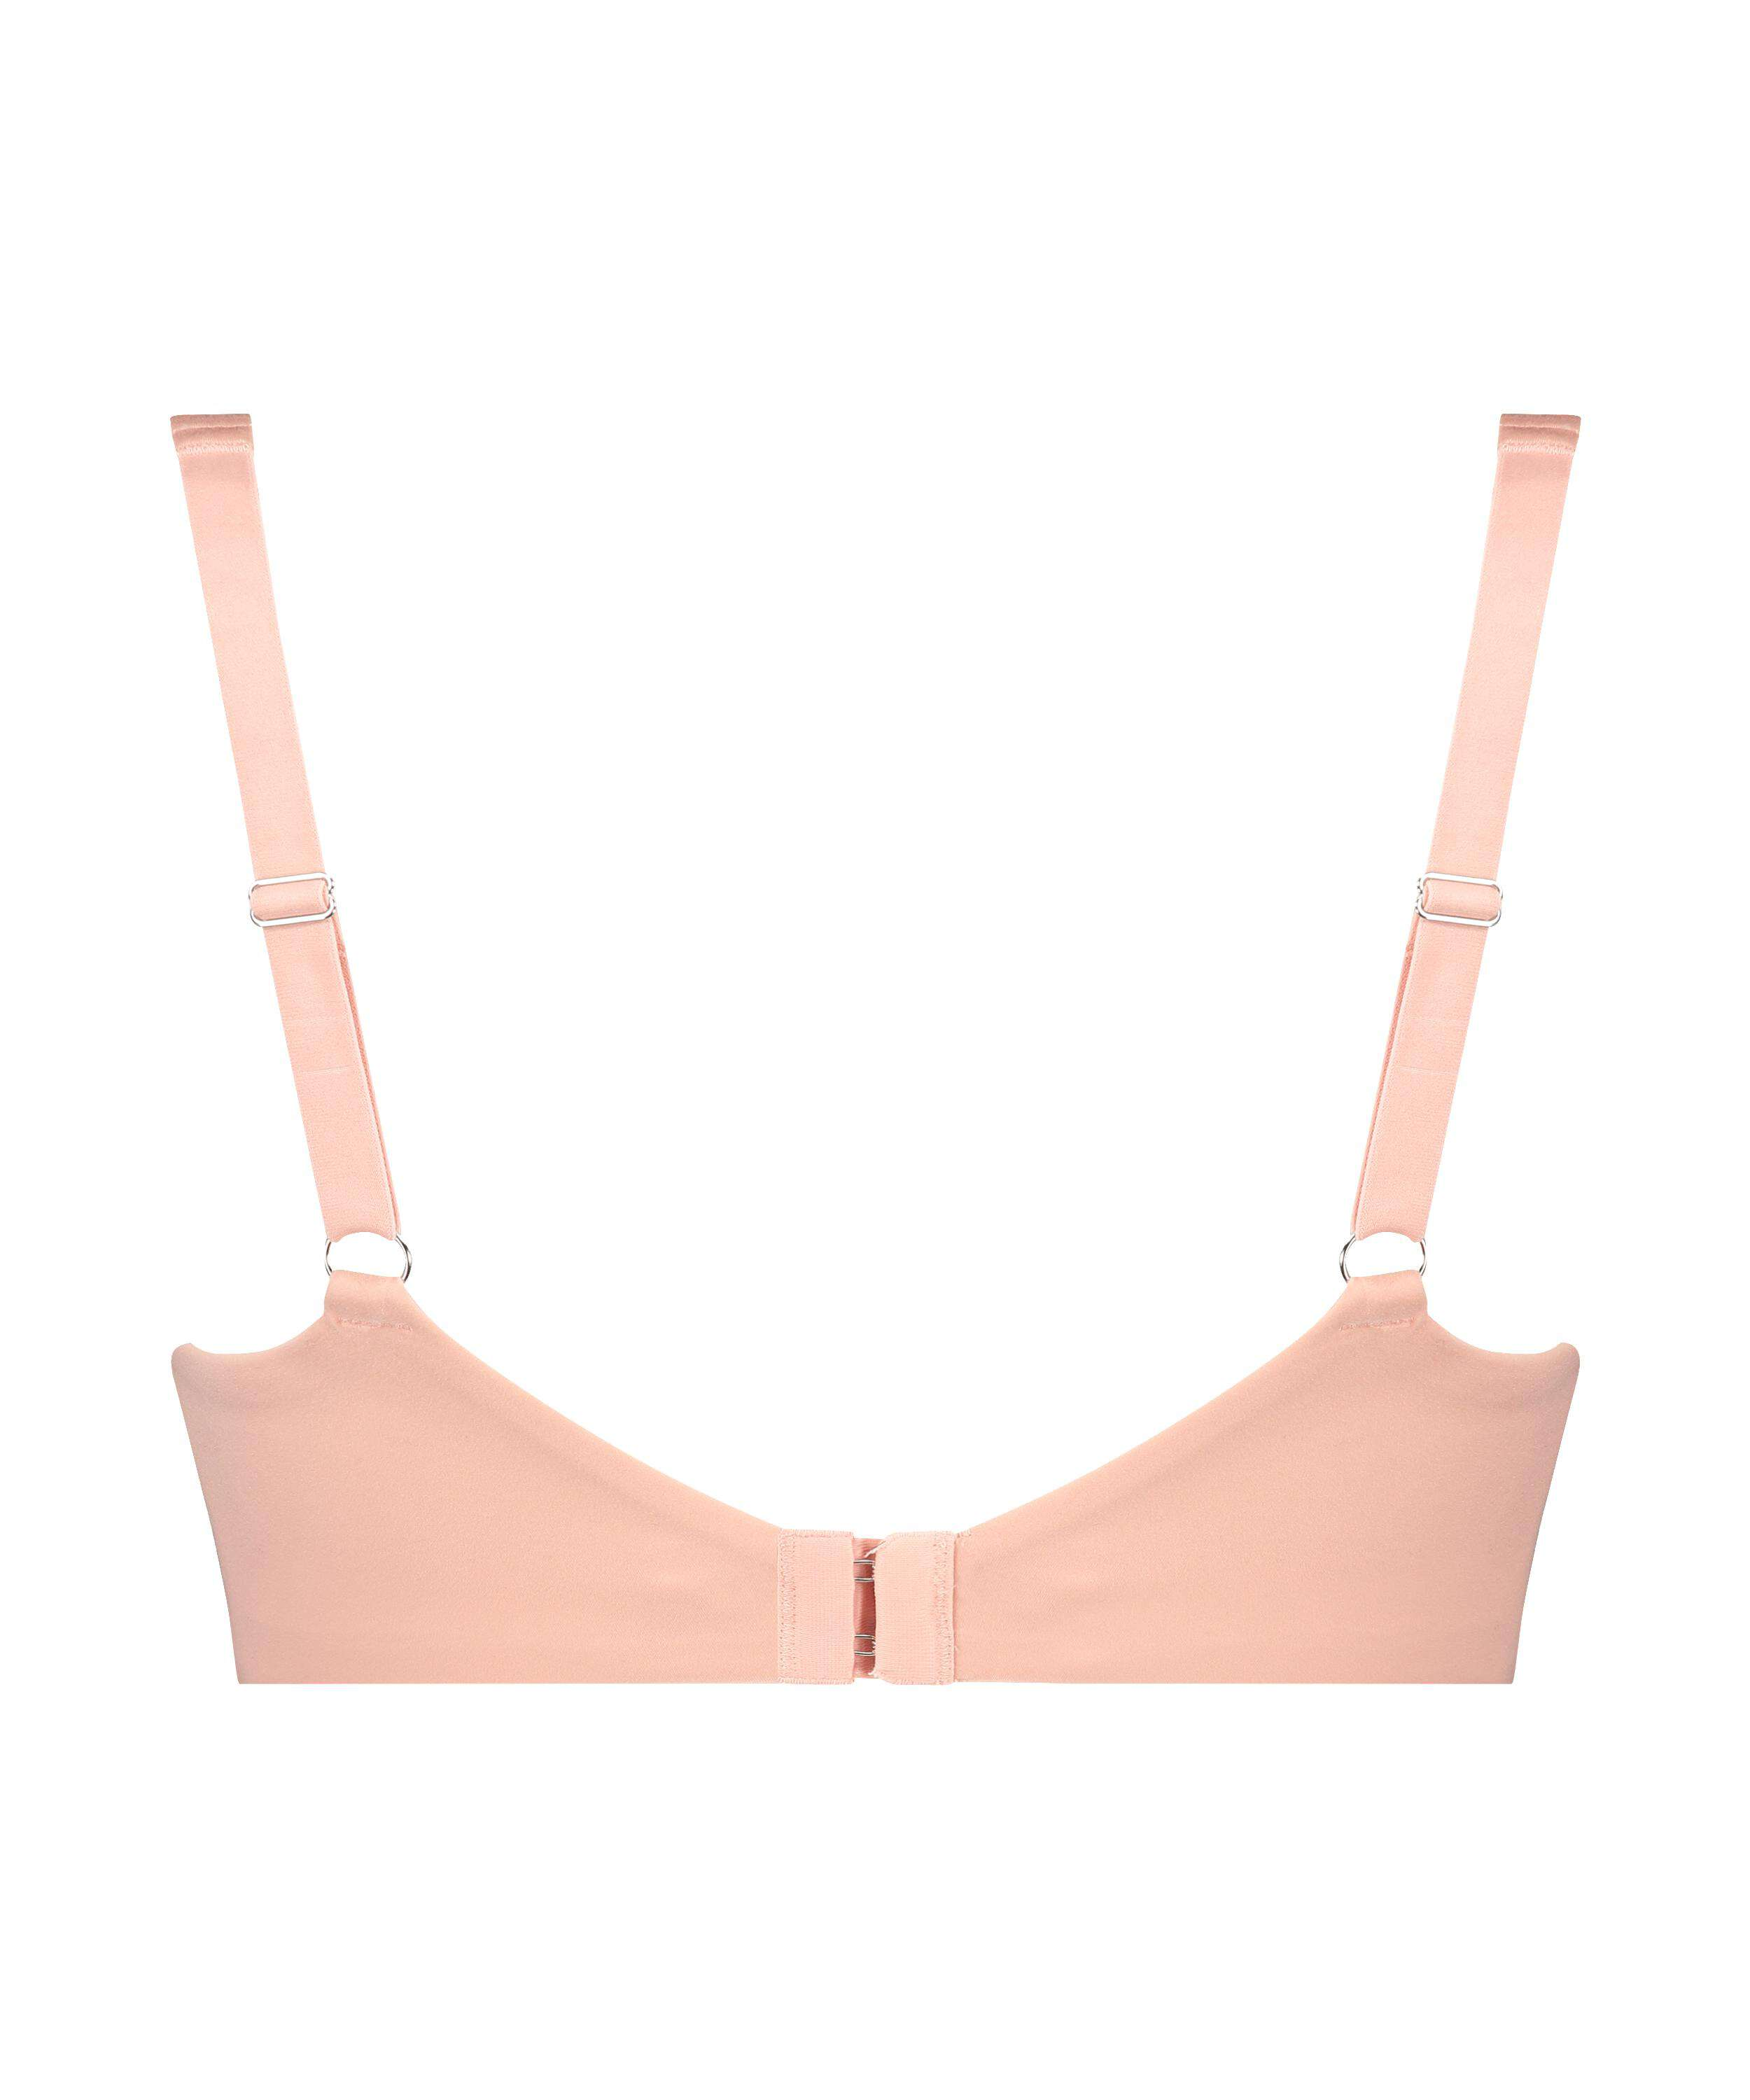 Soft non-padded underwire bra Cup E +, Pink, main